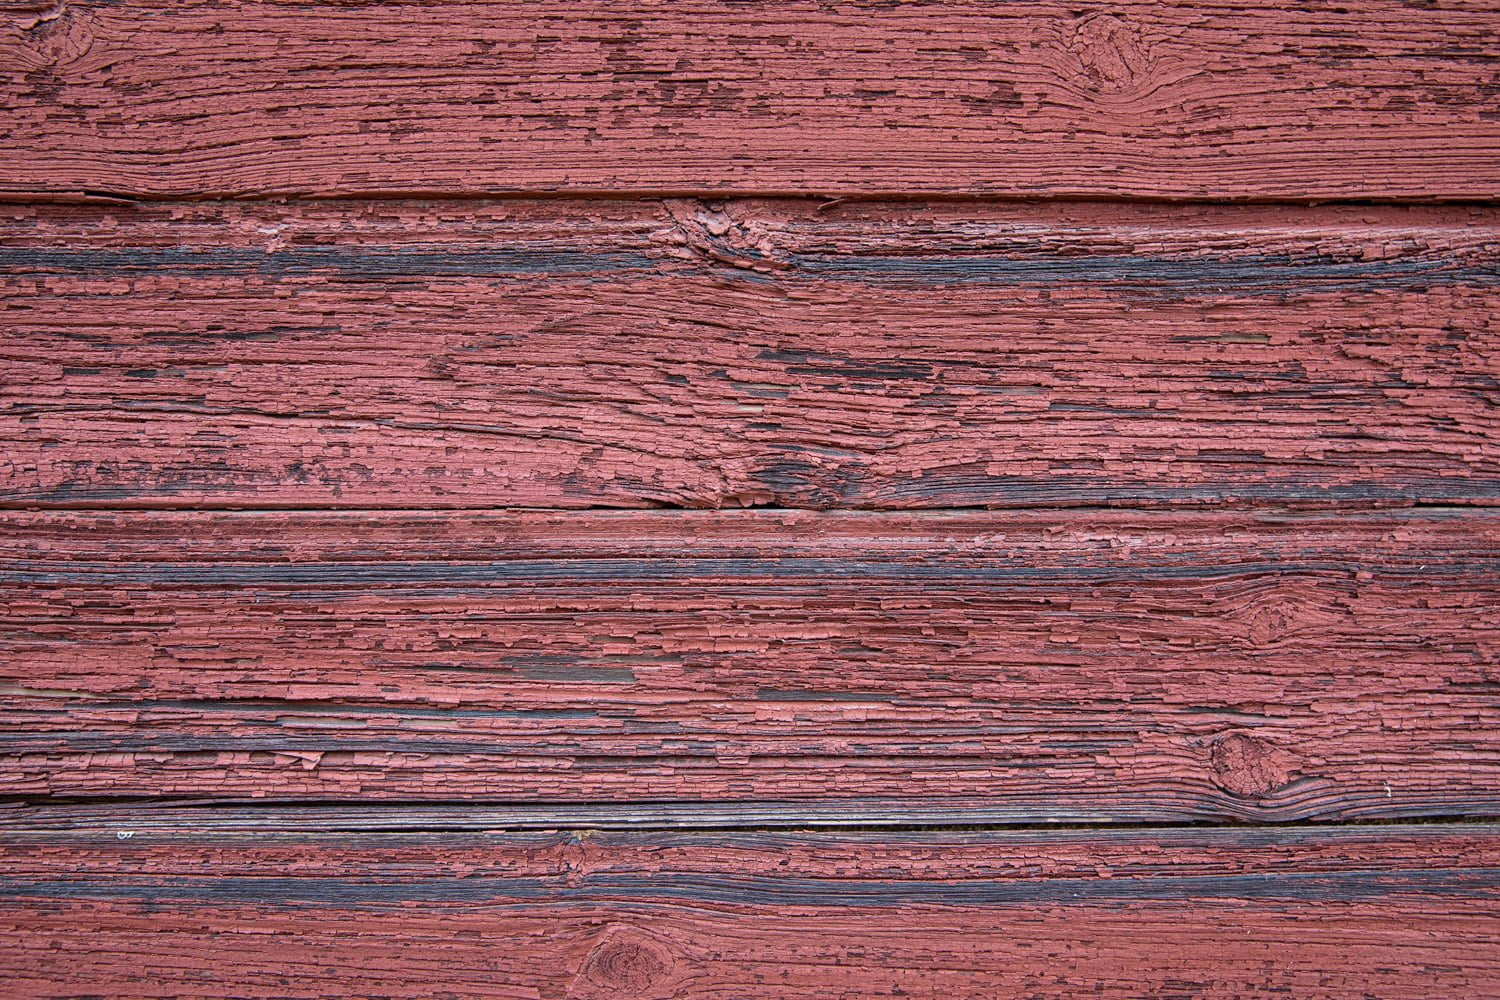 Red Falu Paint from Sweden